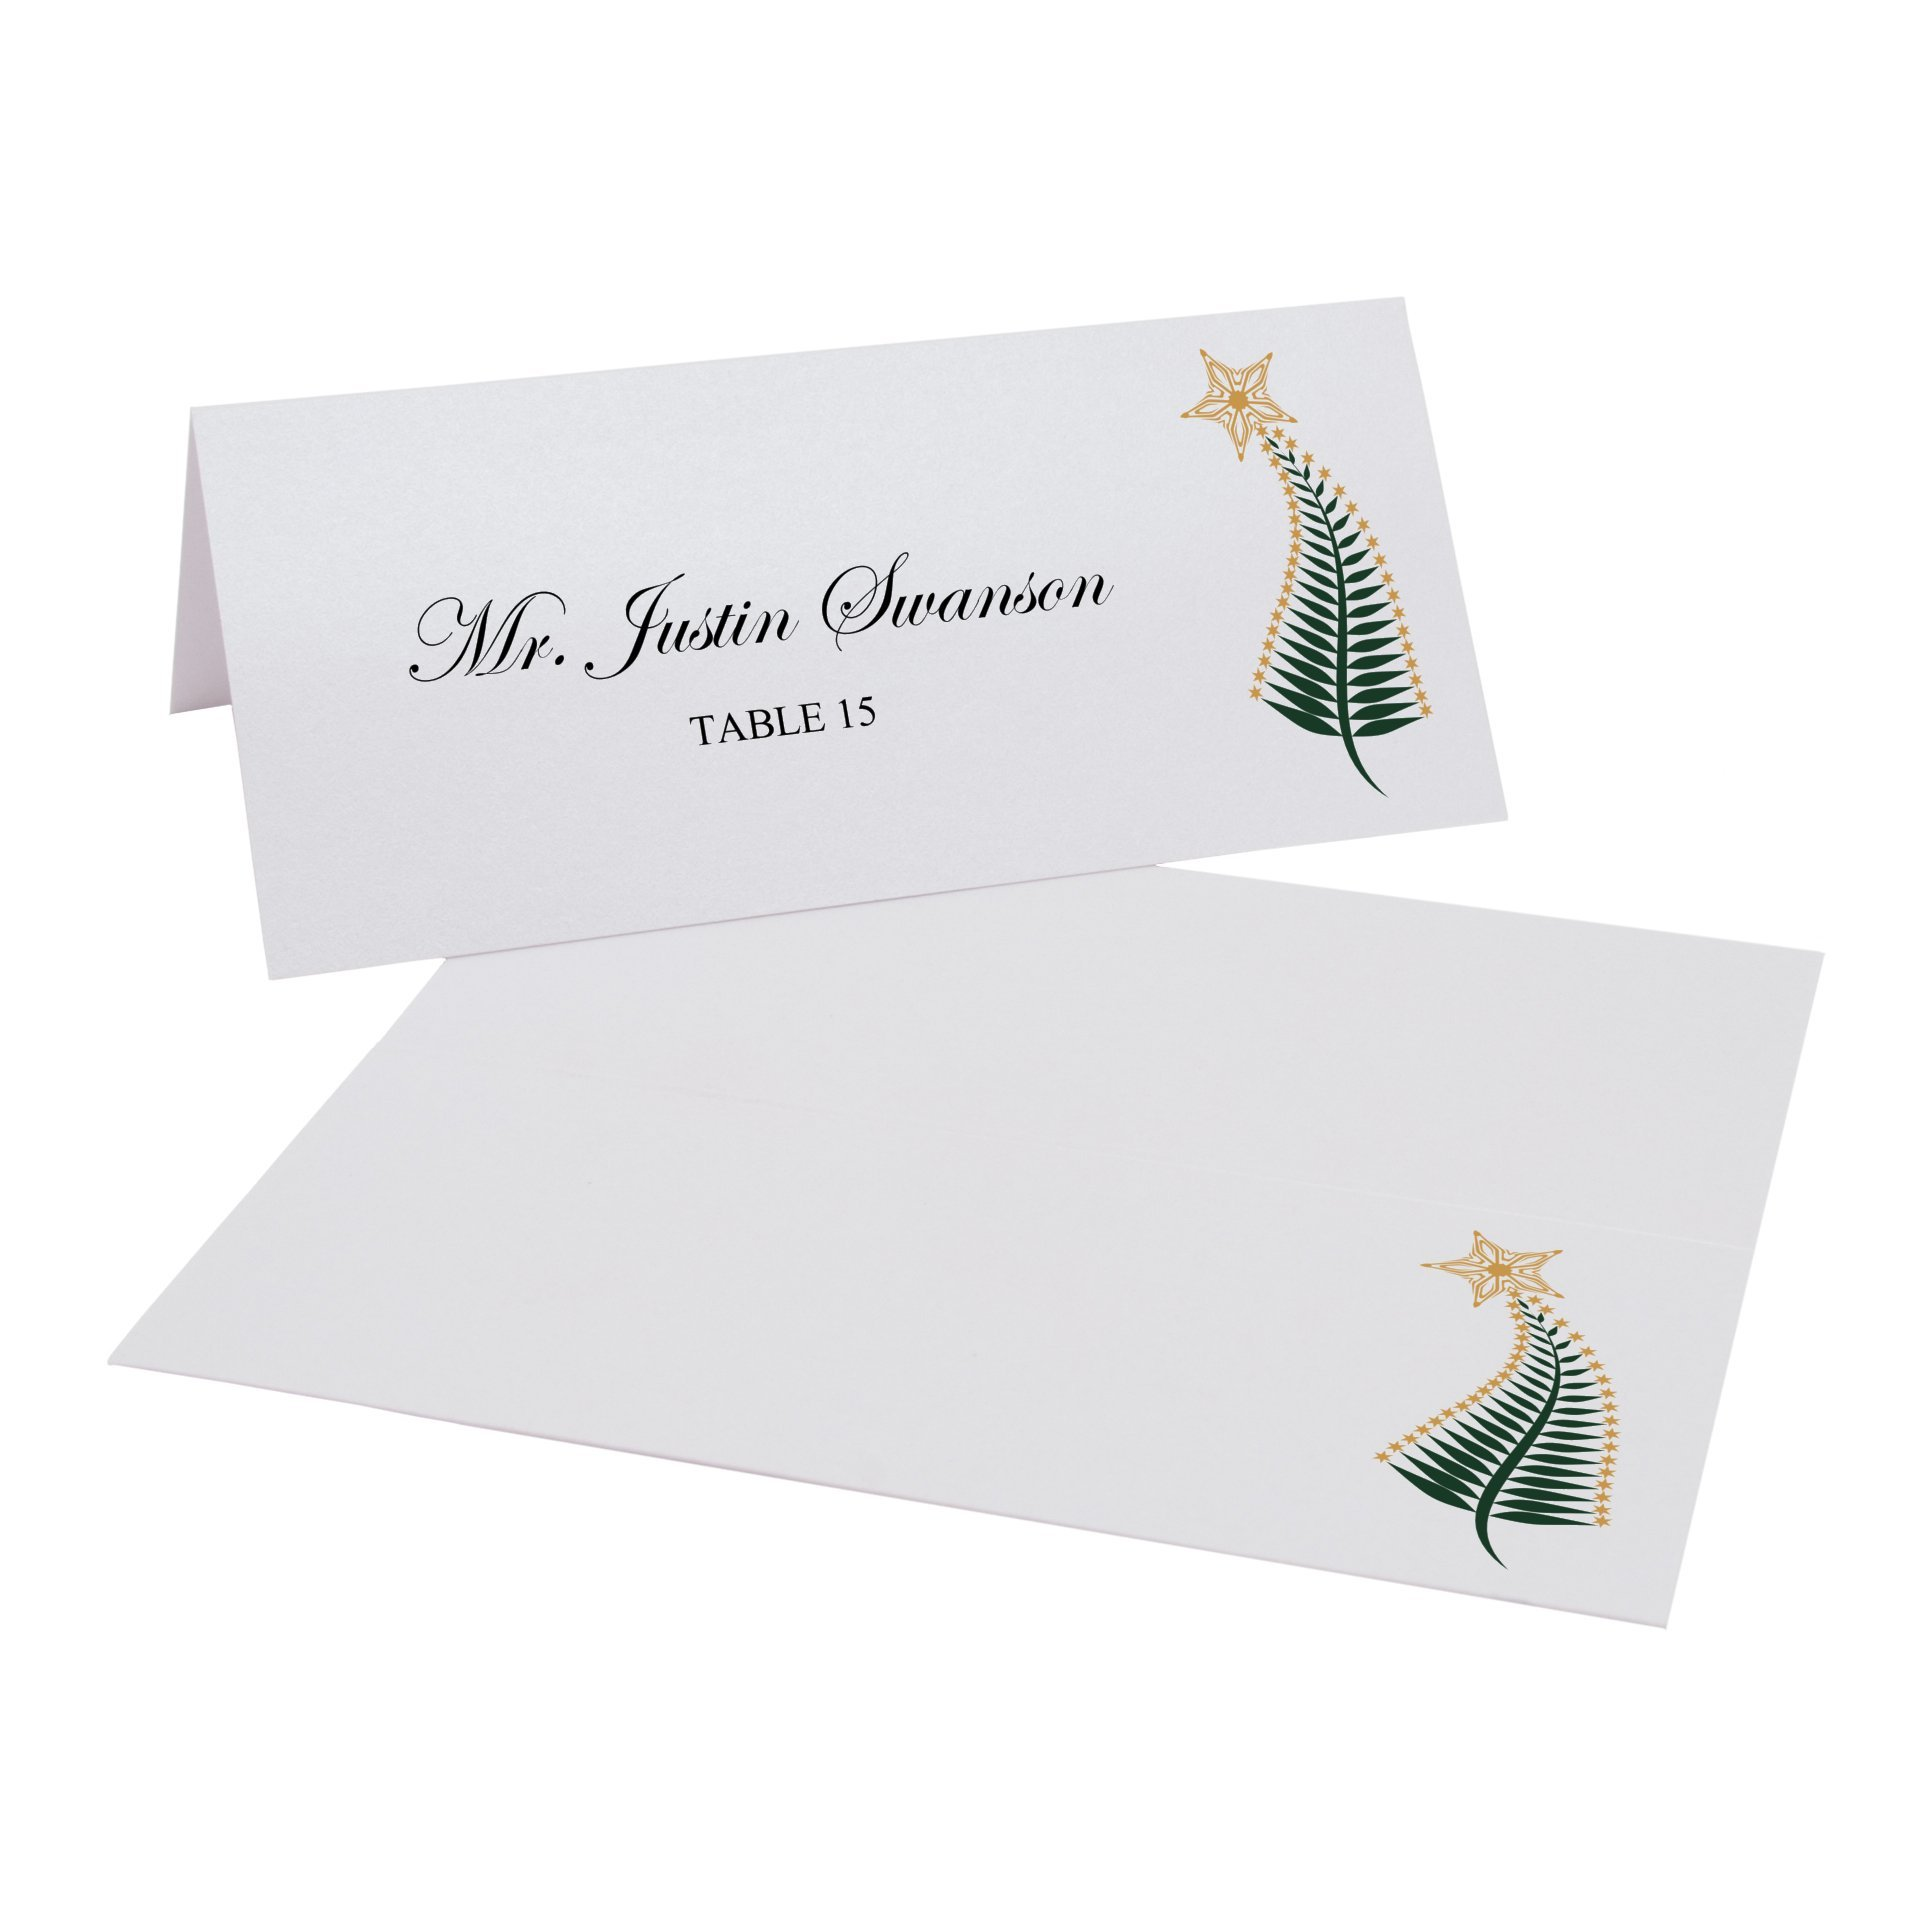 Christmas Tree Flourish Place Cards, Pearl White, Set of 375 by Documents and Designs